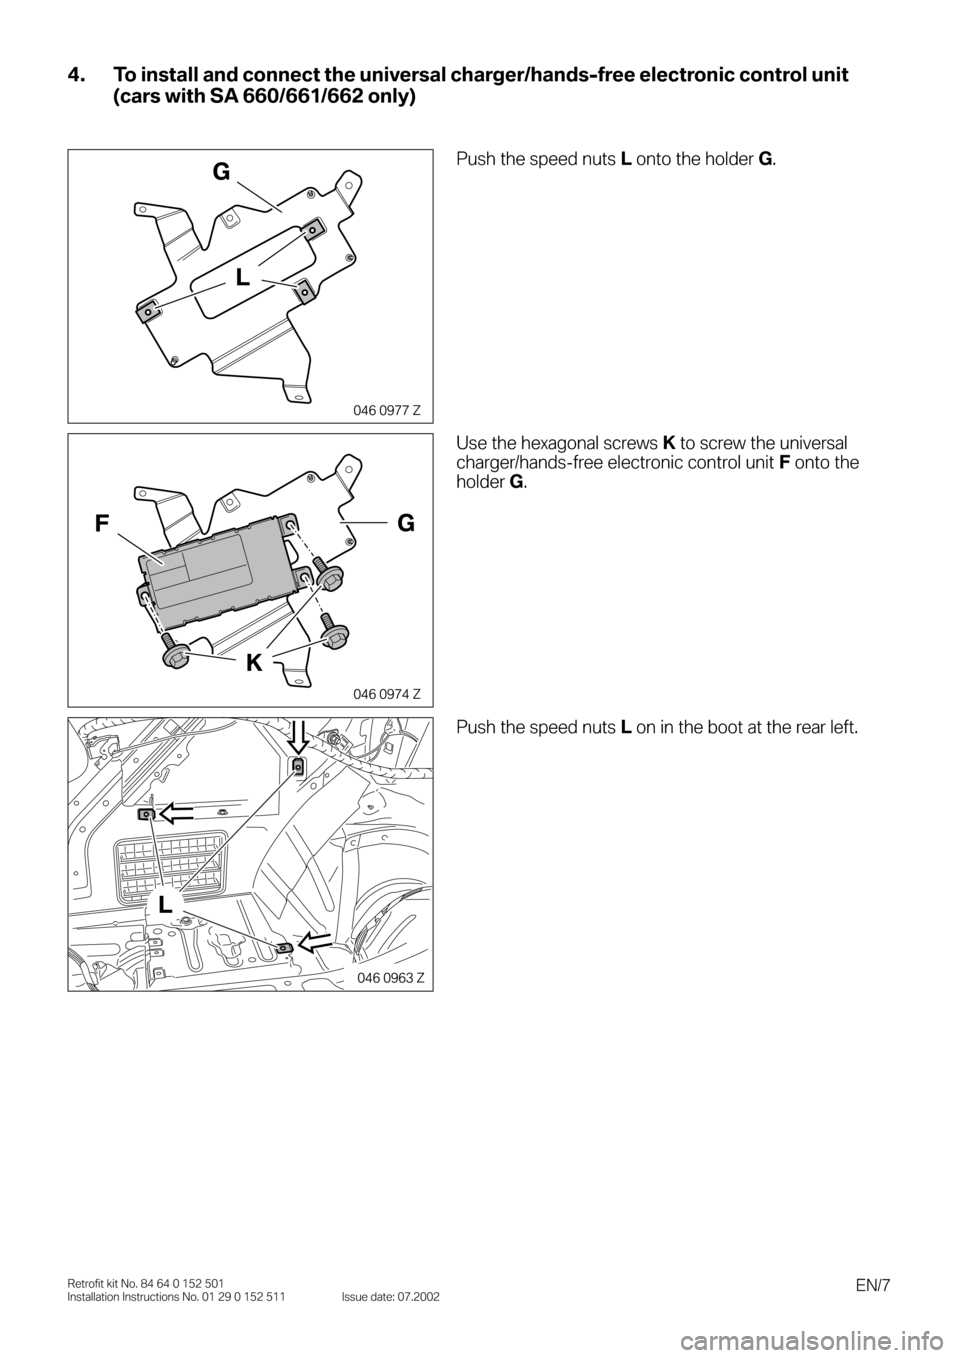 BMW 3 SERIES 2003 E46 Bluetooth Hadsfree Kit Upgrade Installation Instruction Manual, Page 7